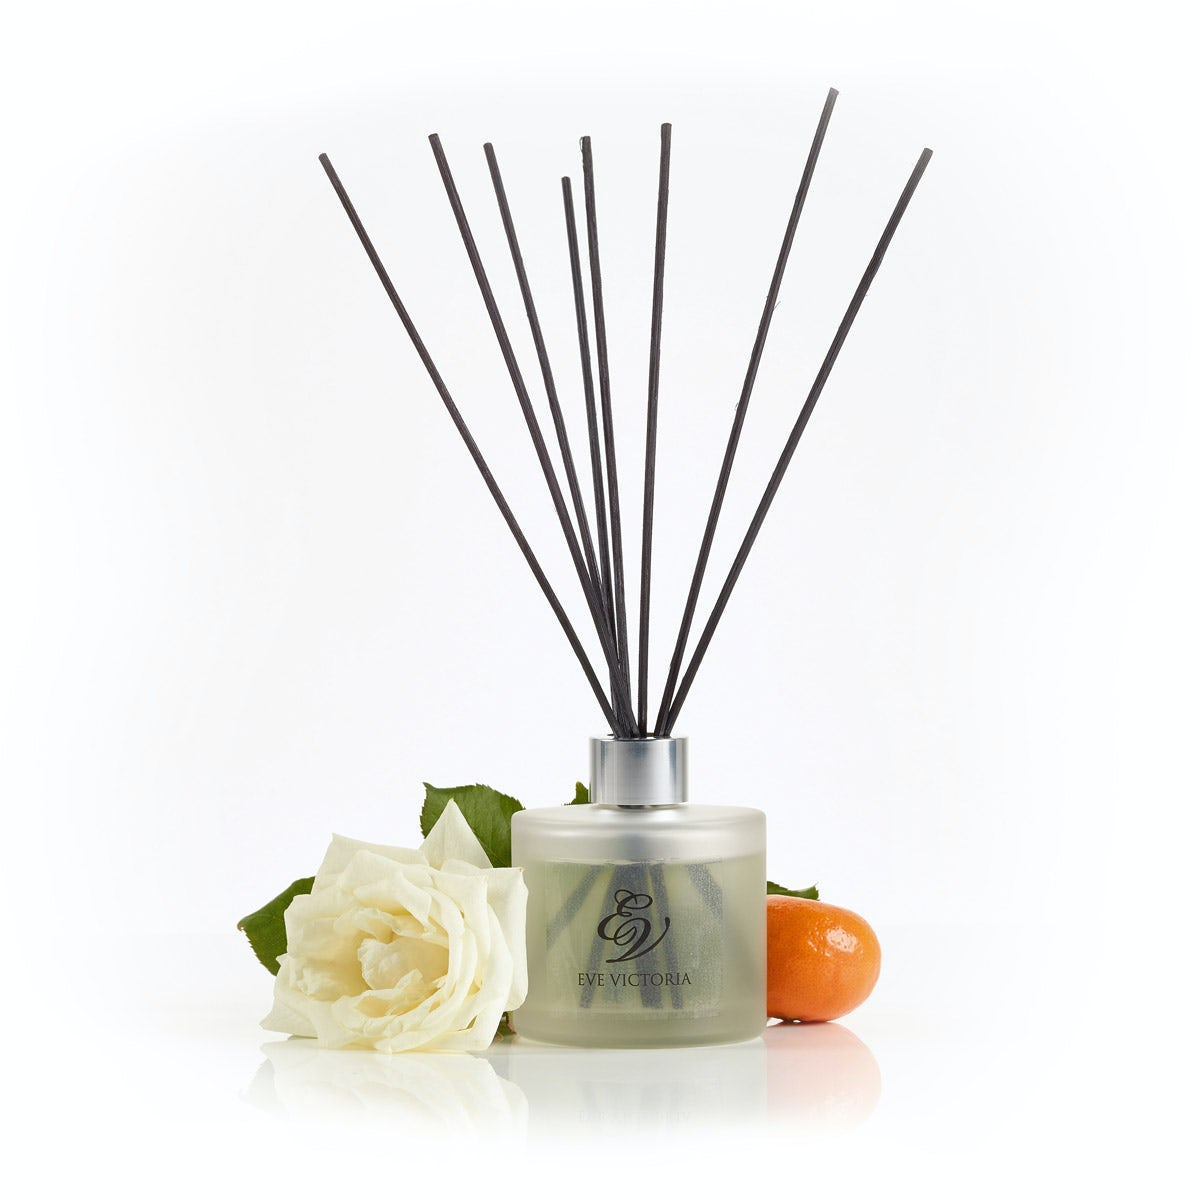 Eve Victoria Neroli, rose & sandalwood reed diffuser 150ml